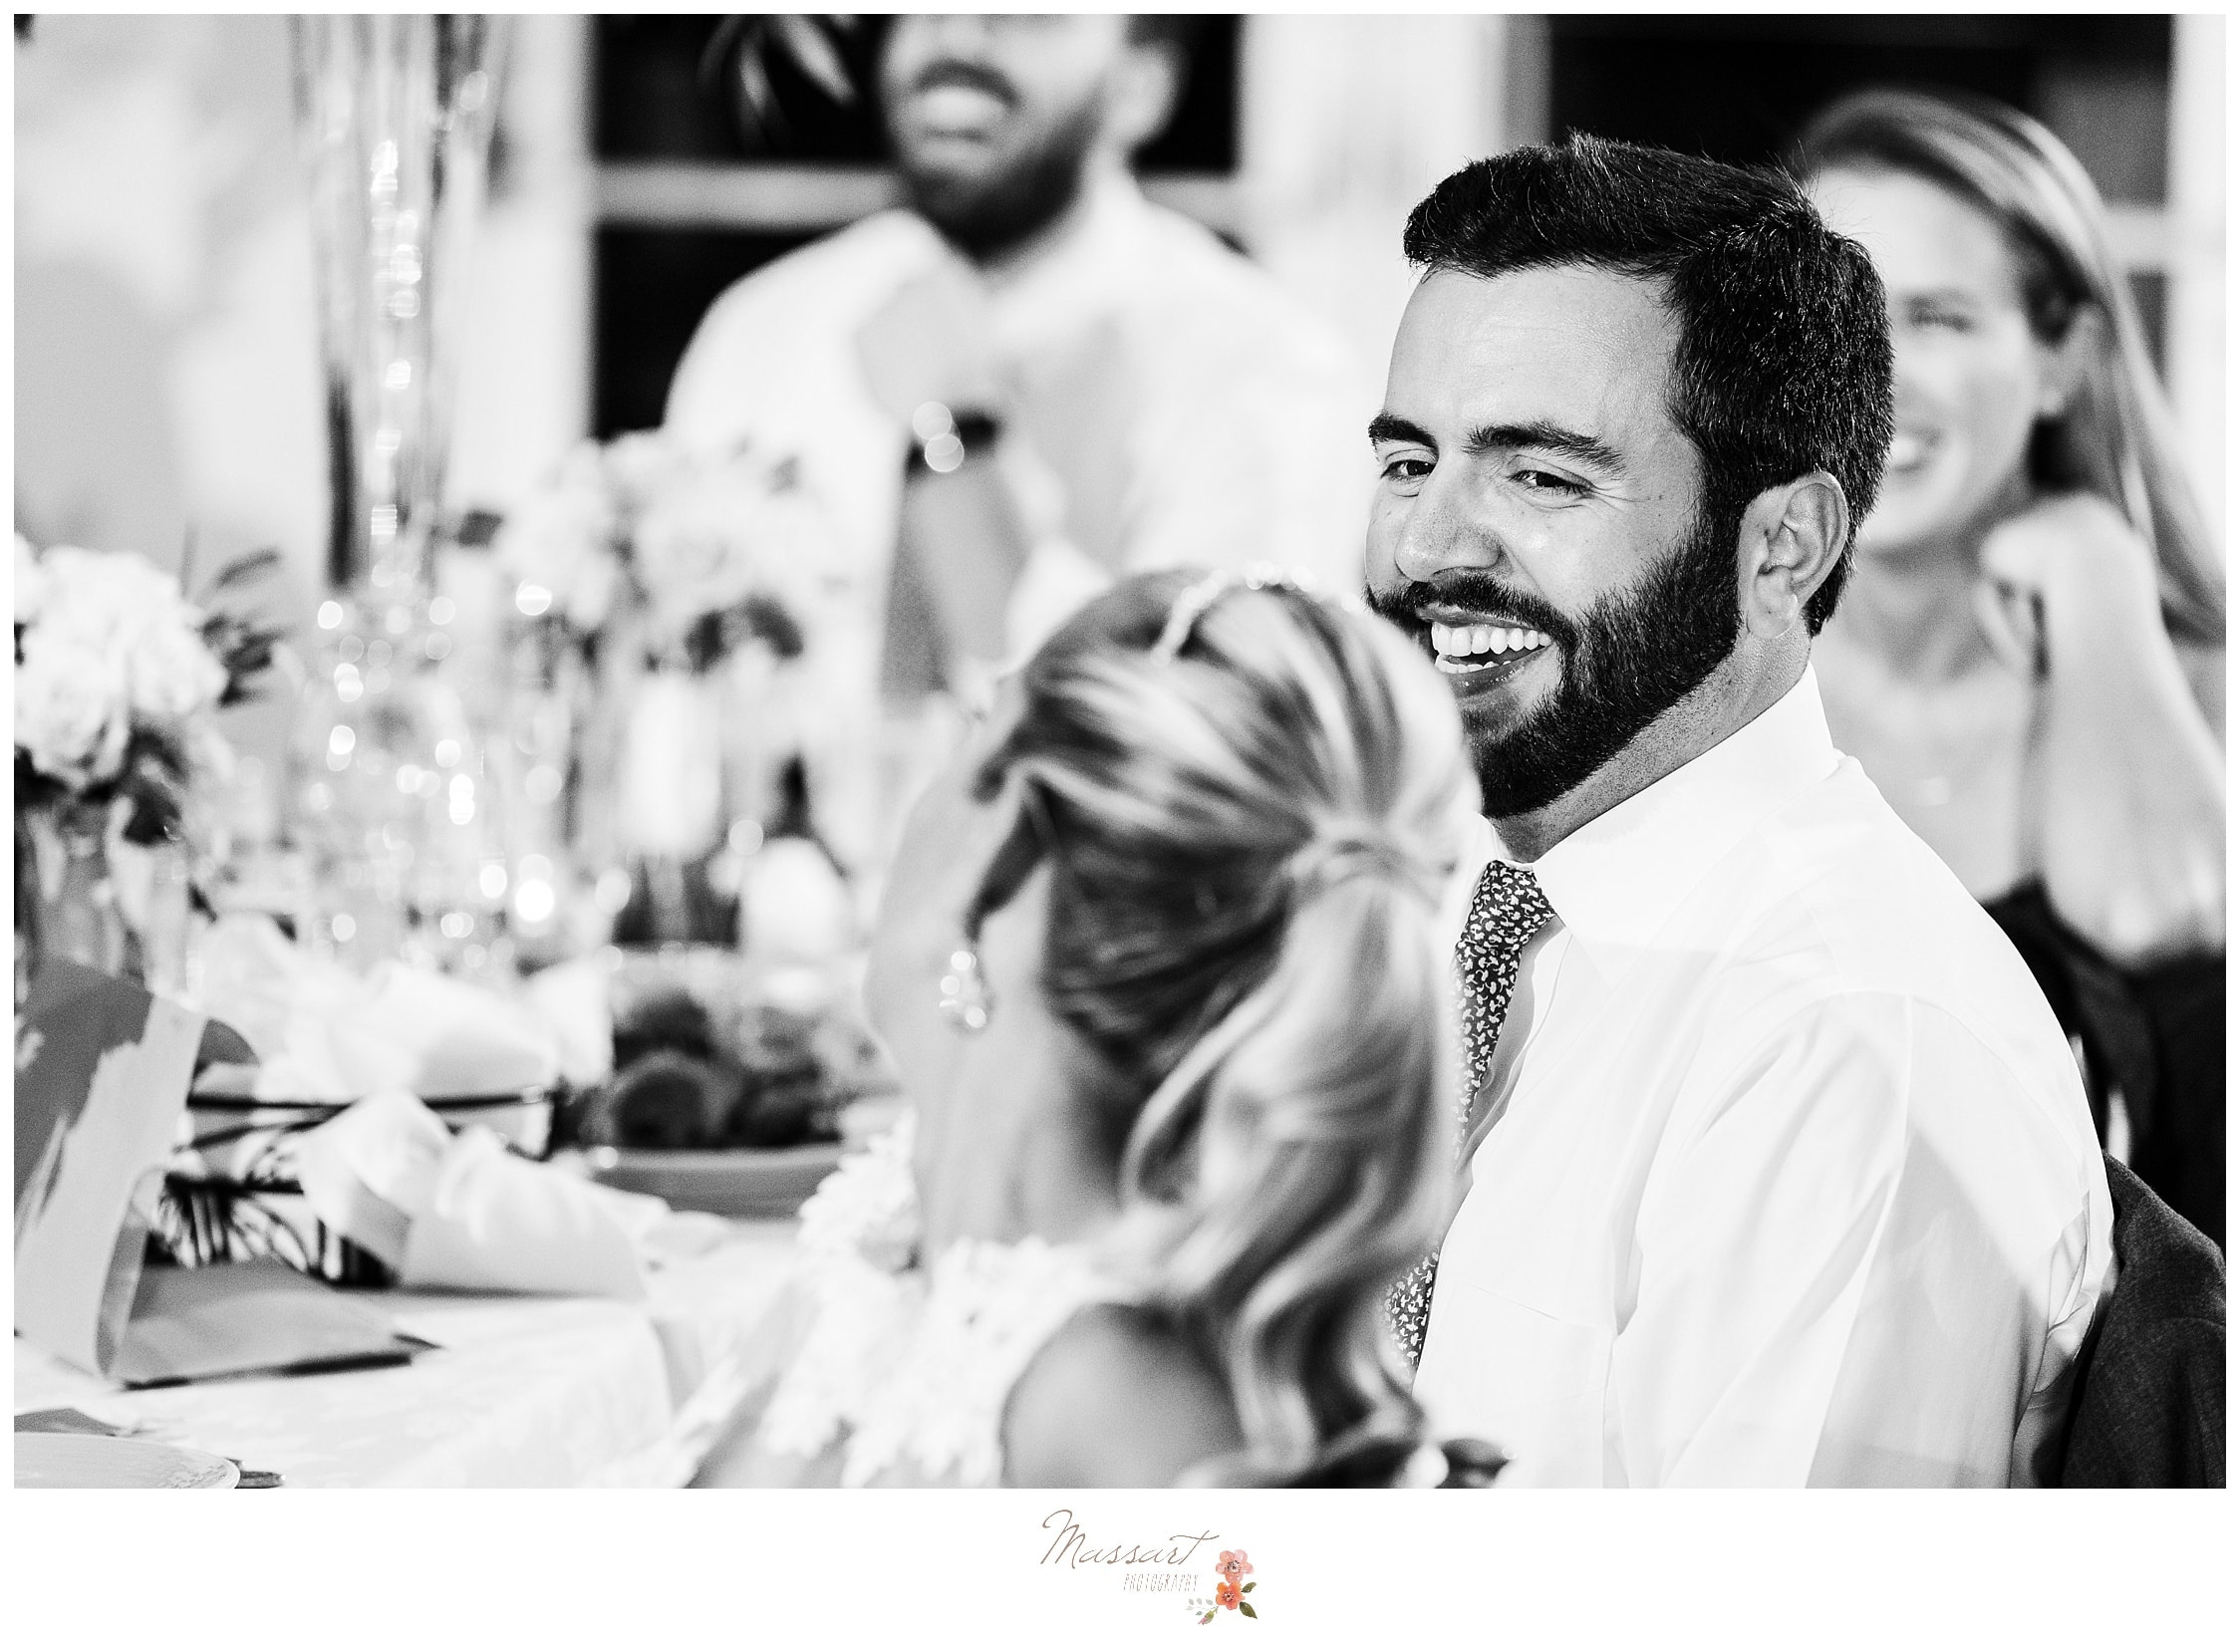 Black and white portrait of the bride and groom having a good time at their wedding ceremony photographed by Massart Photography RI